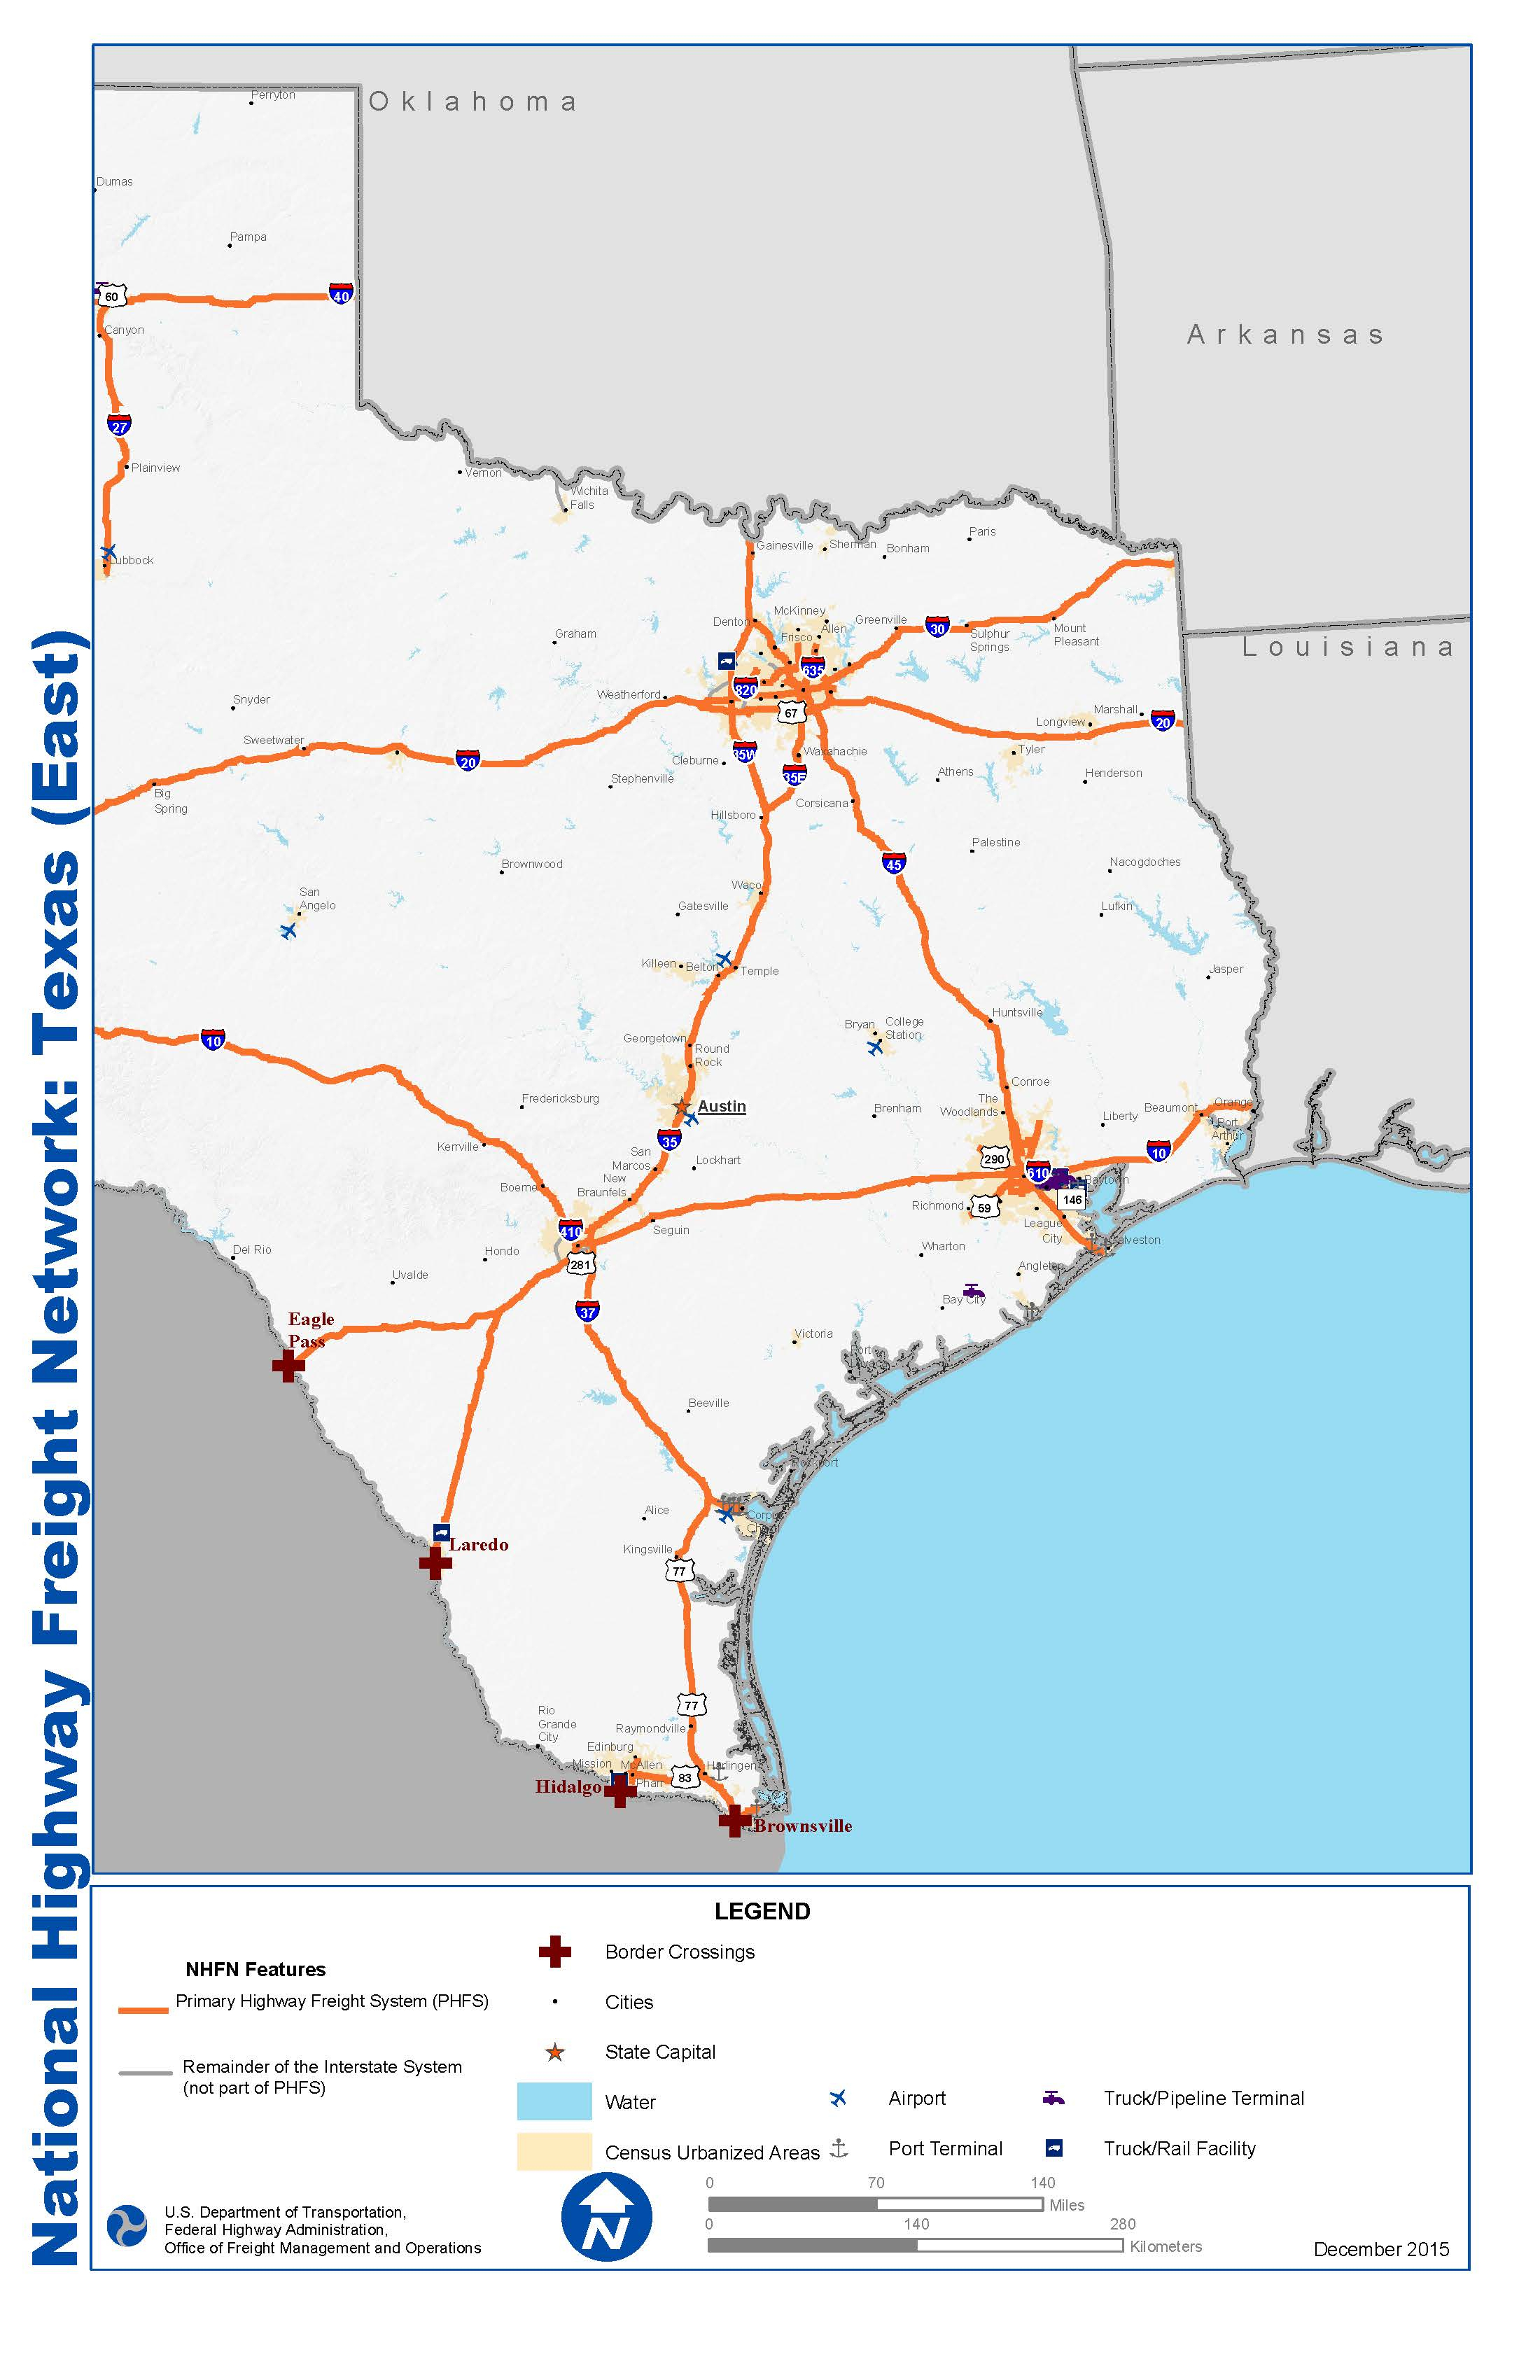 National Highway Freight Network Map And Tables For Texas - Fhwa - Map Of I 40 In Texas